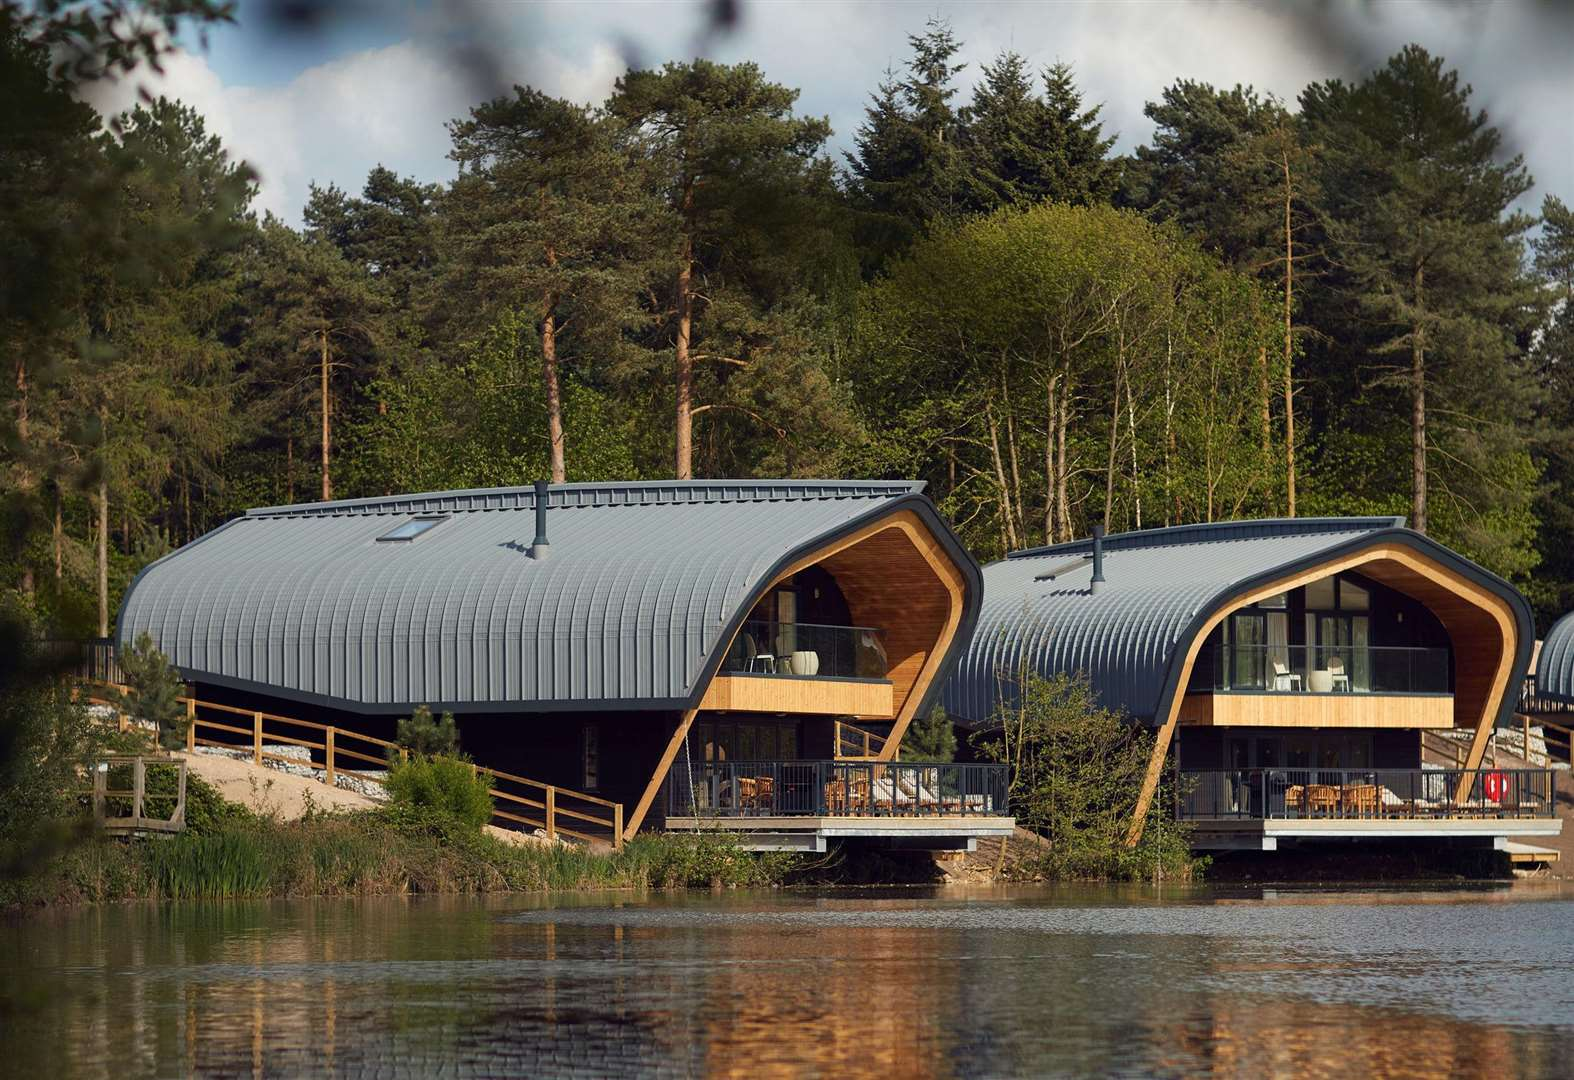 Check out the super swanky lakeside lodges at Centre Parcs